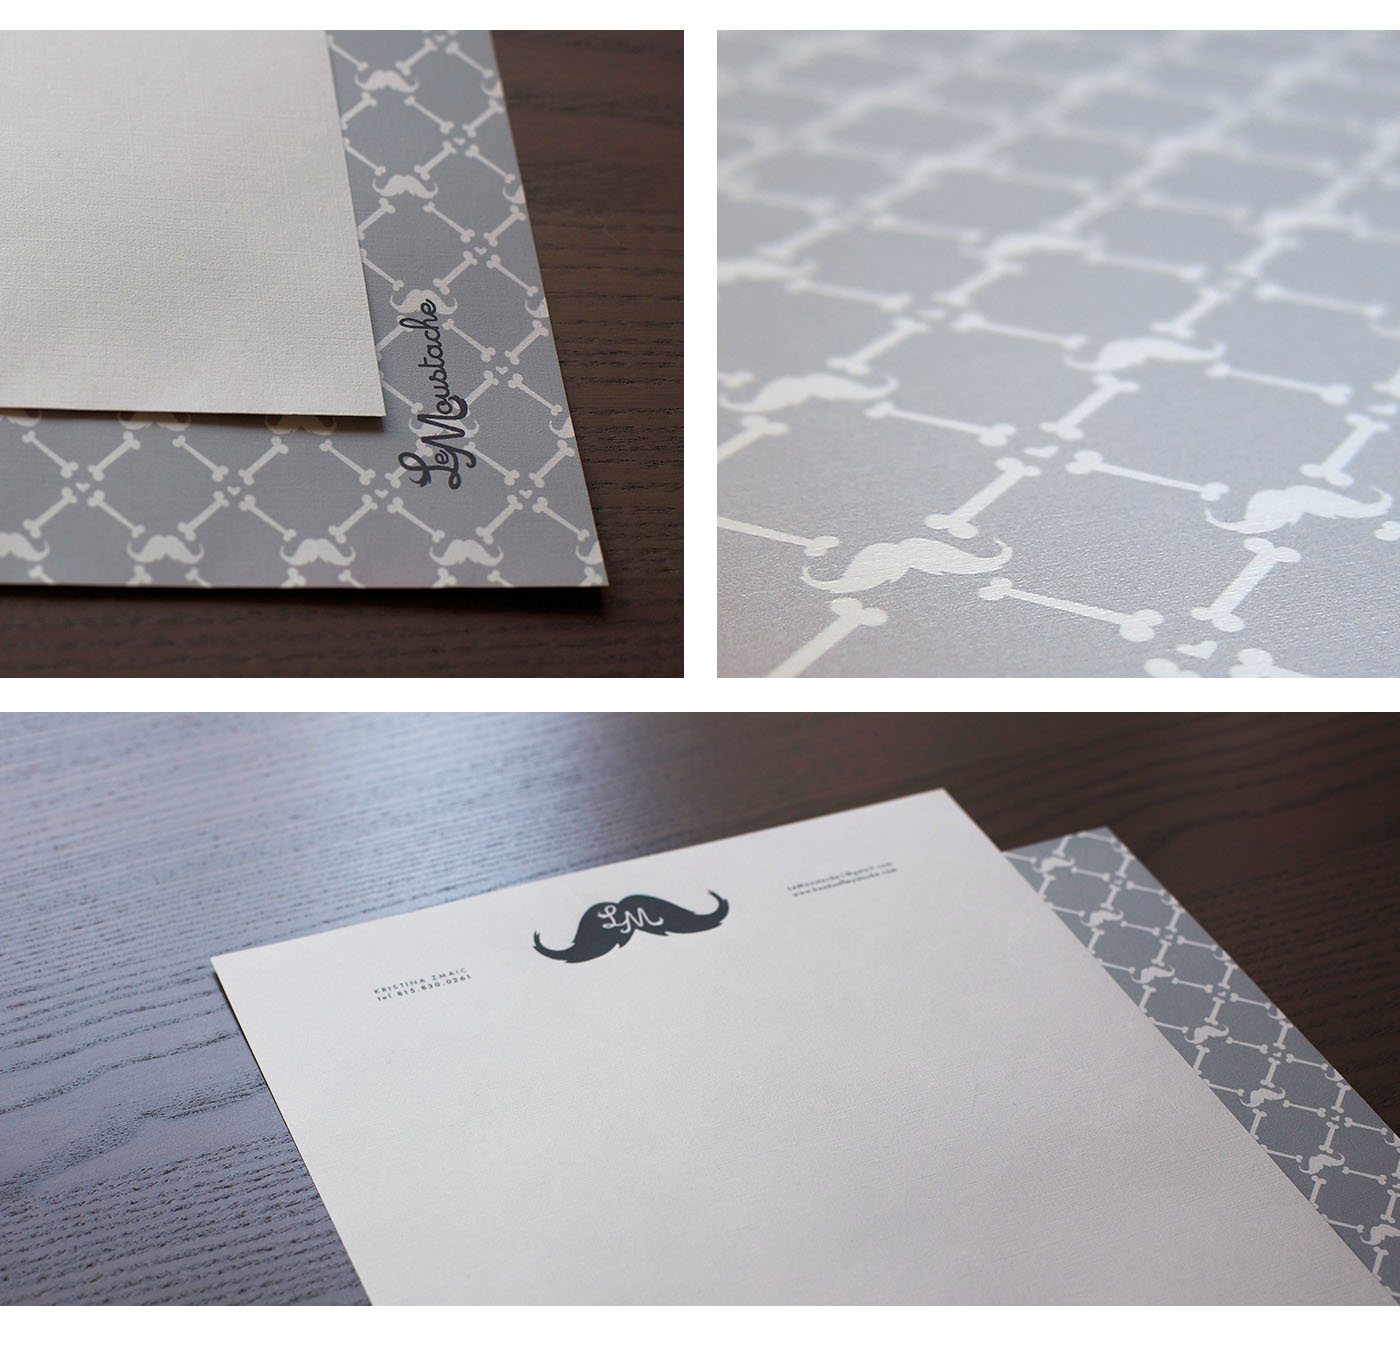 zmaic-lemoustache-interior-goods-home-custom-textiles-furniture-pillows-patterns_branding-art-direction-collateral-letterhead-business-cards-details-paper-texture.jpg